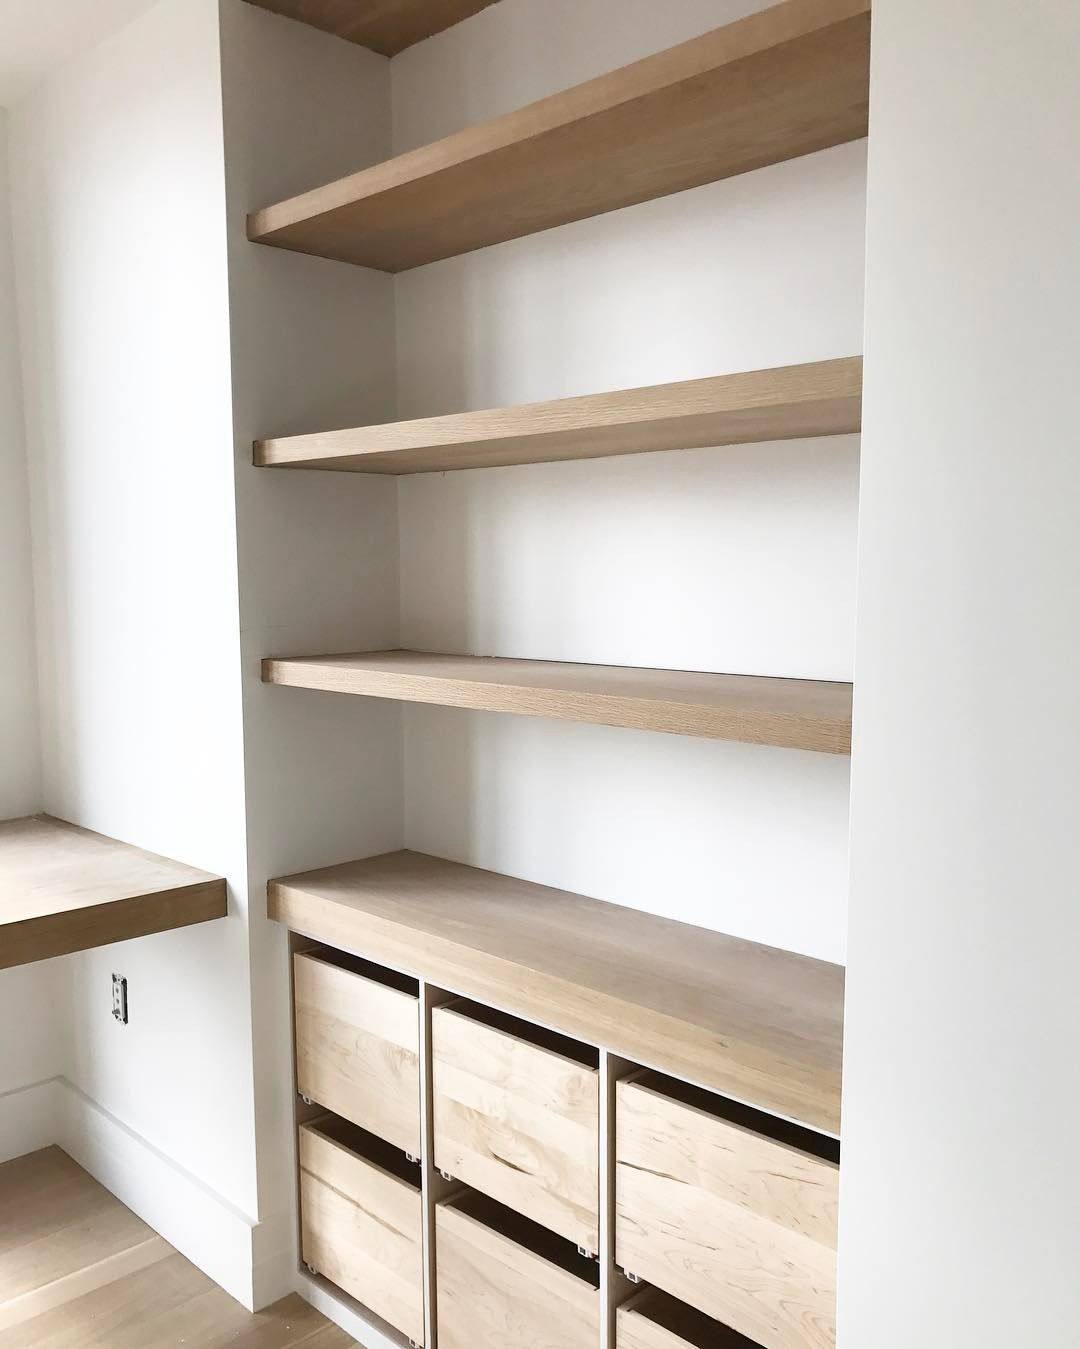 Ns Builders On Instagram As Things Get Unwrapped Here At 8thstreno I Begin Looking For M Schlafzimmer Regale Zuhause Diy Ideen Zum Selbermachen Für Zu Hause